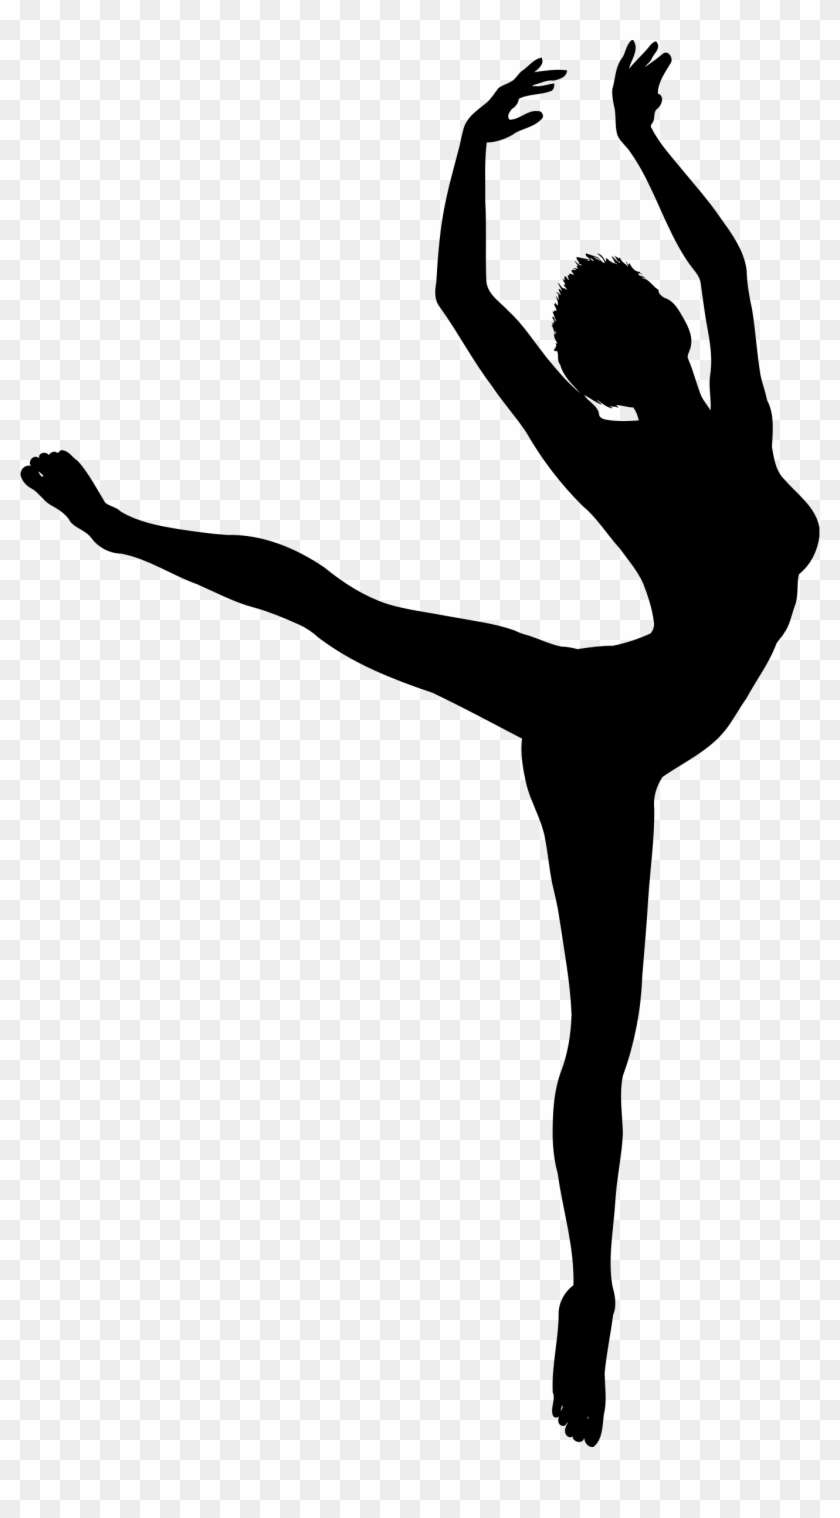 Dancer Silhouette 2 - Dancer Silhouette Png #198711